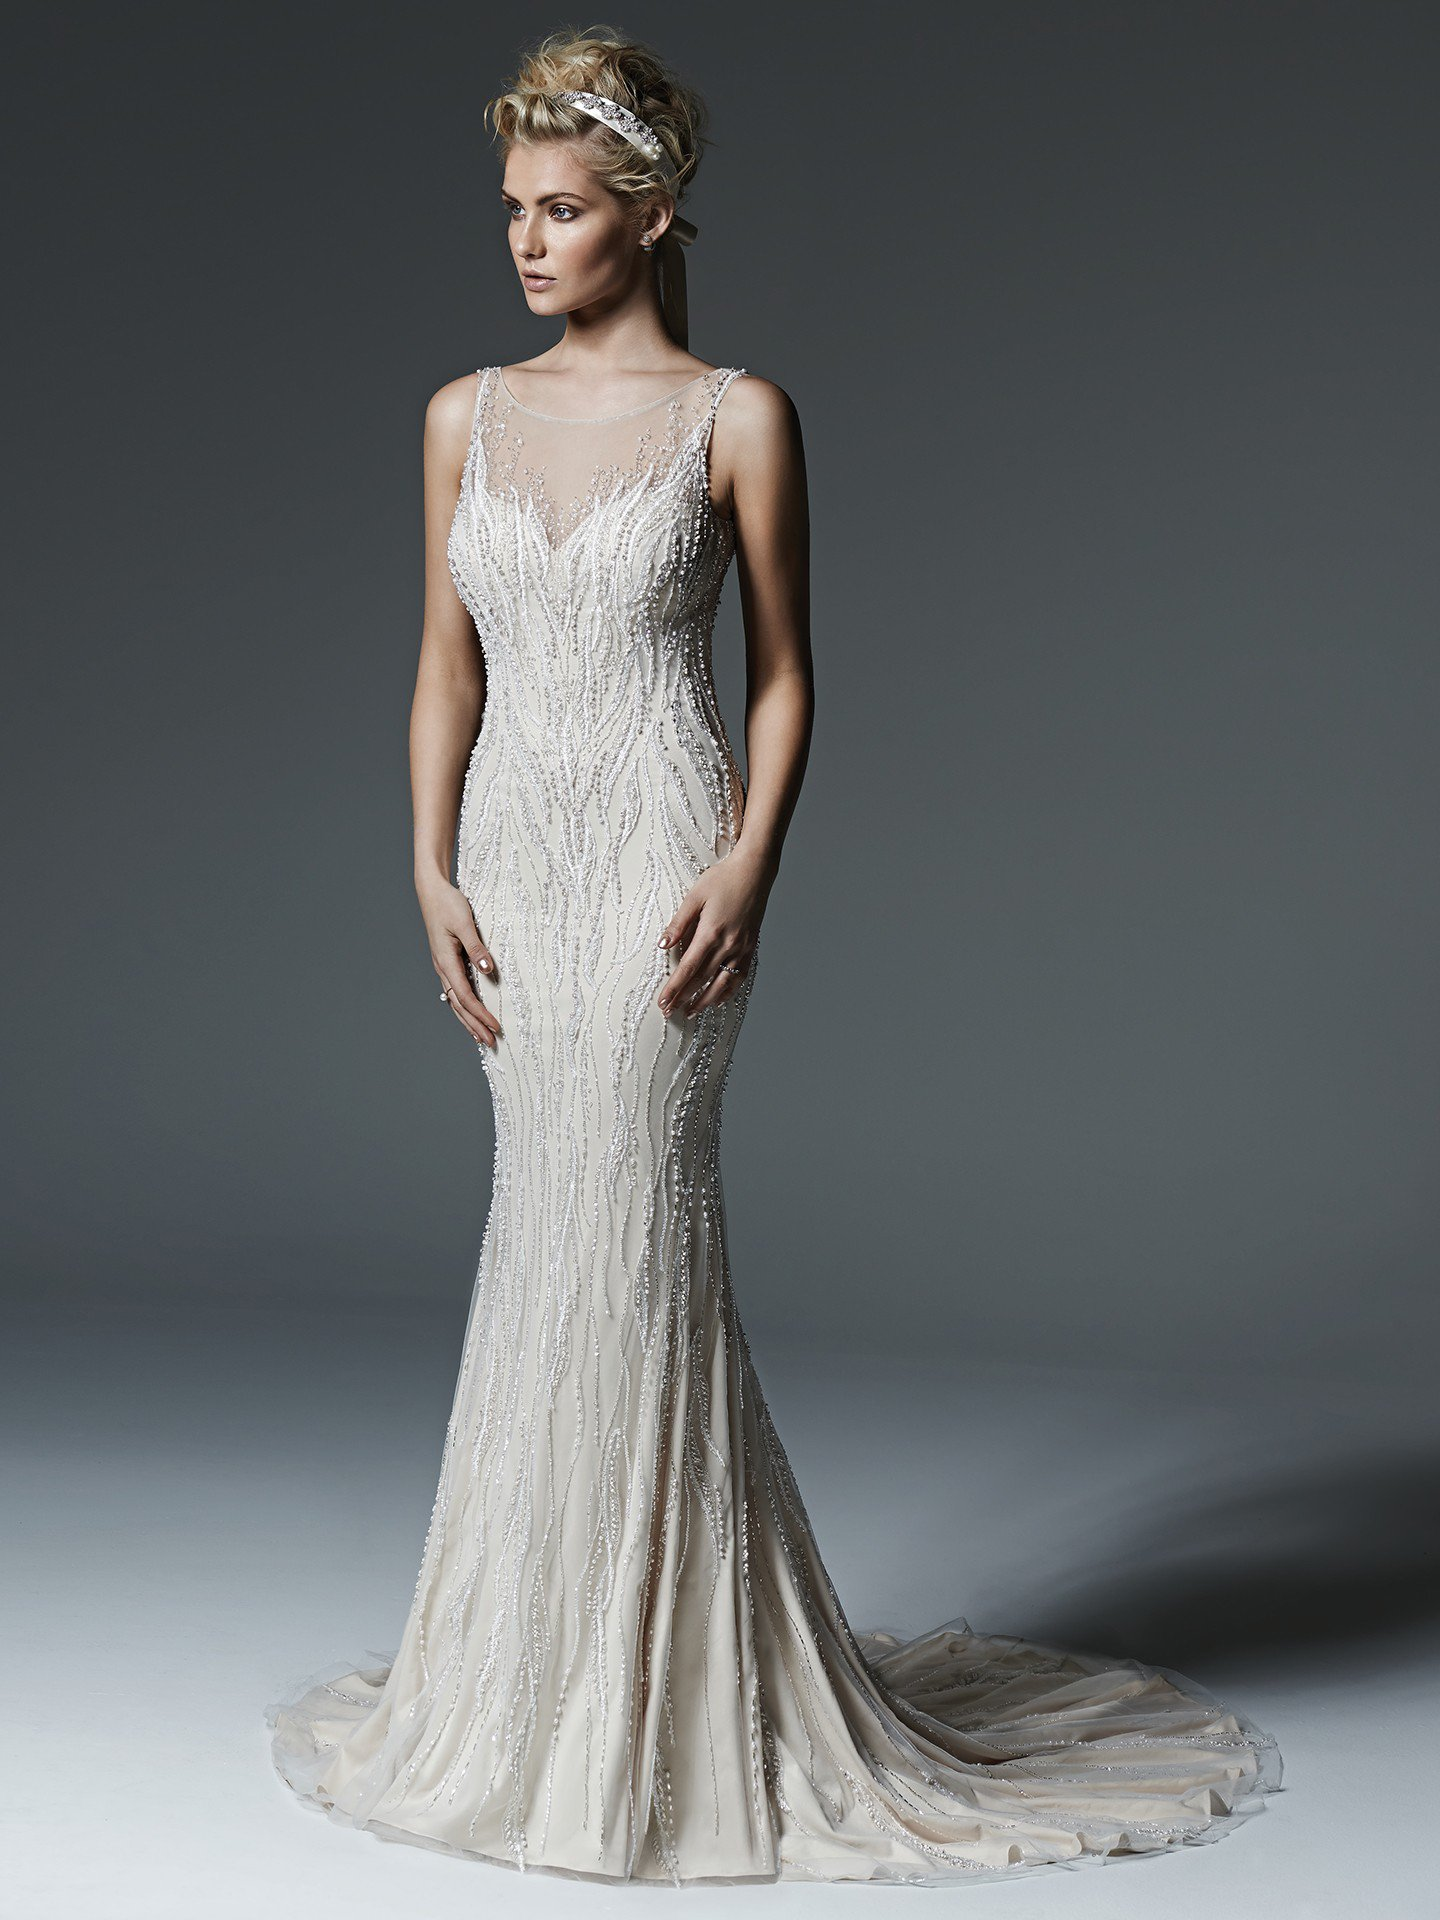 Sottero &#038; Midgley <br> Florinda <br> Size 14 Was £1,600 Now £750